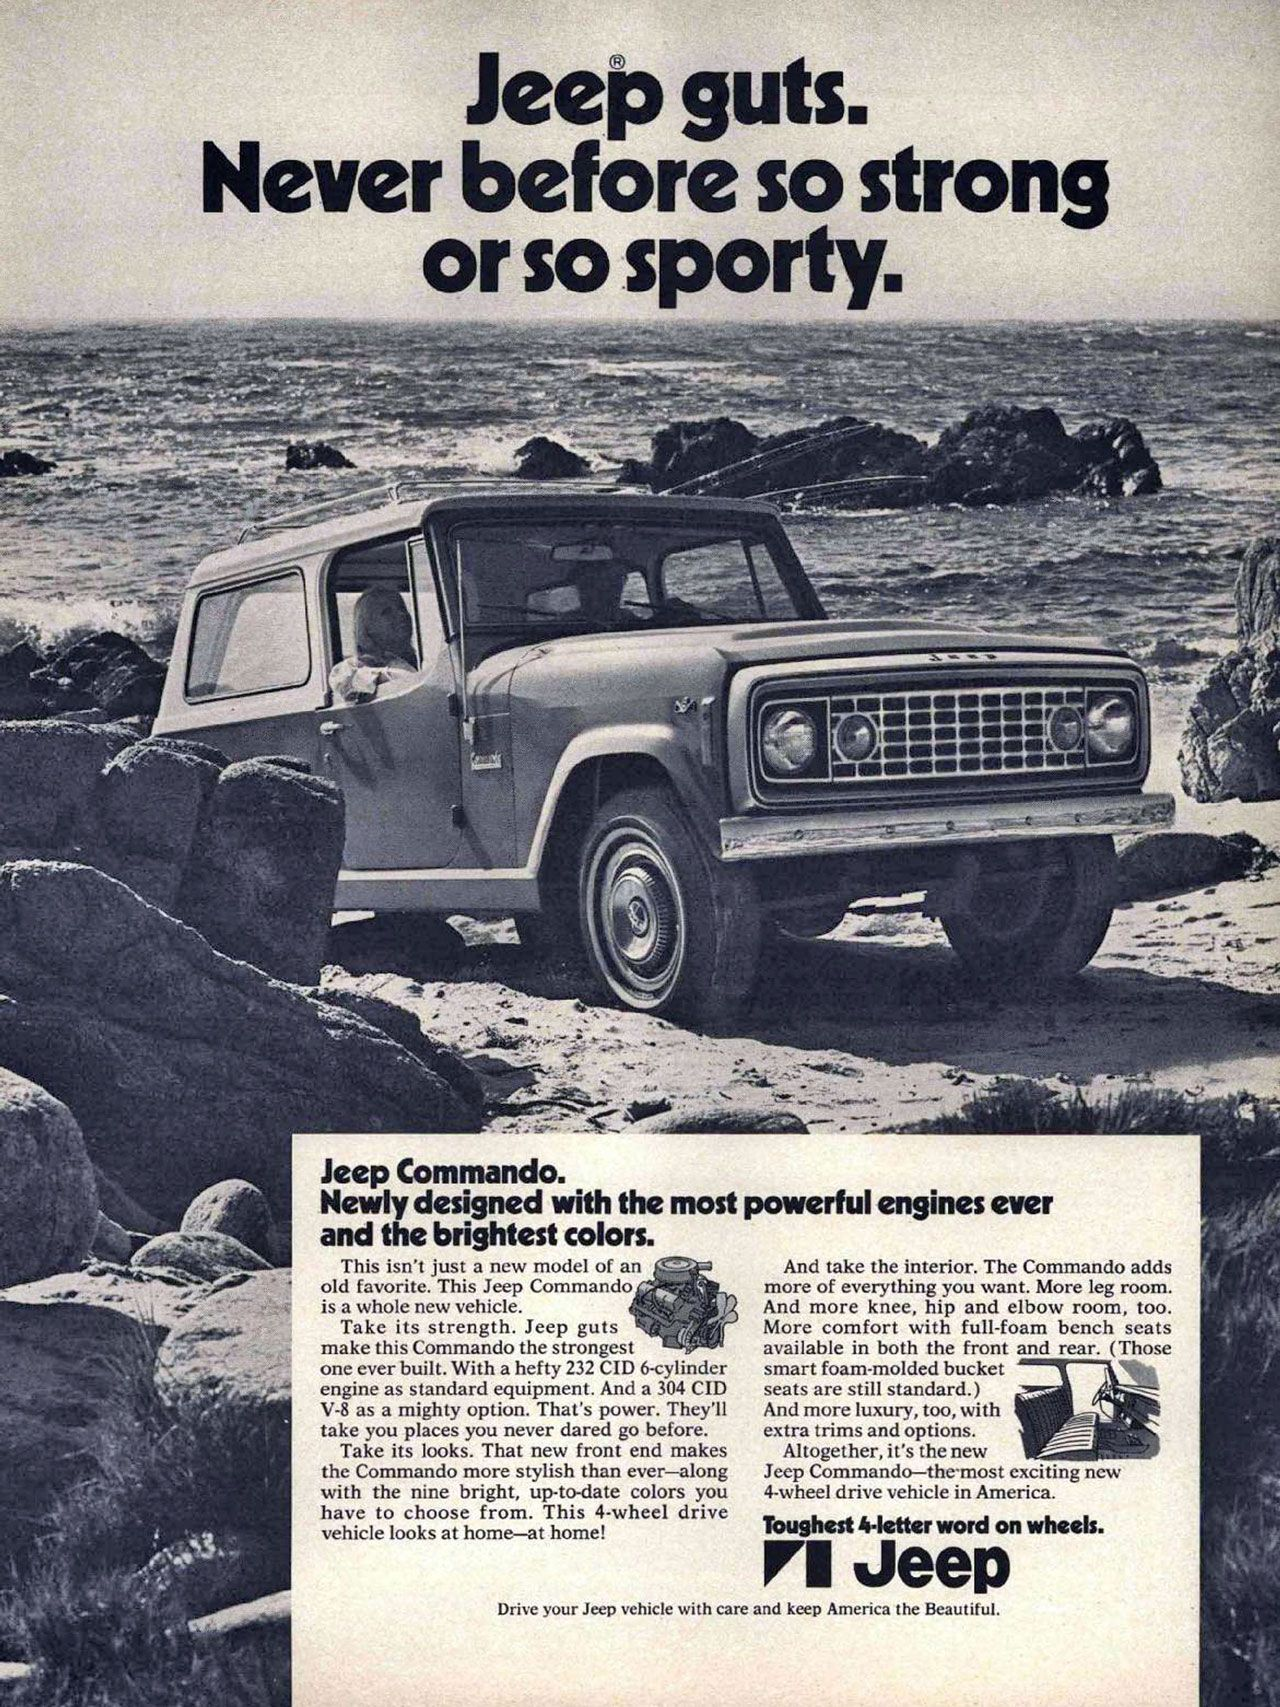 Jeep guts. Never before so strong or so sporty. Jeep Commando. Newly designed with the most powerful engines ever and the brightest colors. This isn't just a new model of an old favorite. This Jeep Commando is a whole new vehicle. Take its strength. Jeep guts make this Commando the strongest one ever built. With a hefty 232 CID 6-cylinder engine as standard equipment. And a 304 CID V-8 as a mighty option. That's power. They'll take you places you never dared go before. Take its looks. That new front end makes the Commando more stylish than ever—along with the nine bright, up-to-date colors you have to choose from. This 4-wheel drive vehicle looks at home—at home! And take the interior. The Commando adds more of everything you want. More leg room. And more knee, hip and elbow room, too. More comfort with full-foam bench seats available in both the front and rear. (Those smart foam-molded bucket seats are still standard.) And more luxury, too, with extra trims and options. Altogether, it's the new Jeep Commando—the-most exciting new 4-wheel drive vehicle in America. Toughest 4-letter word on wheels. Jeep. Drive your Jeep vehicle with care and keep America the Beautiful.